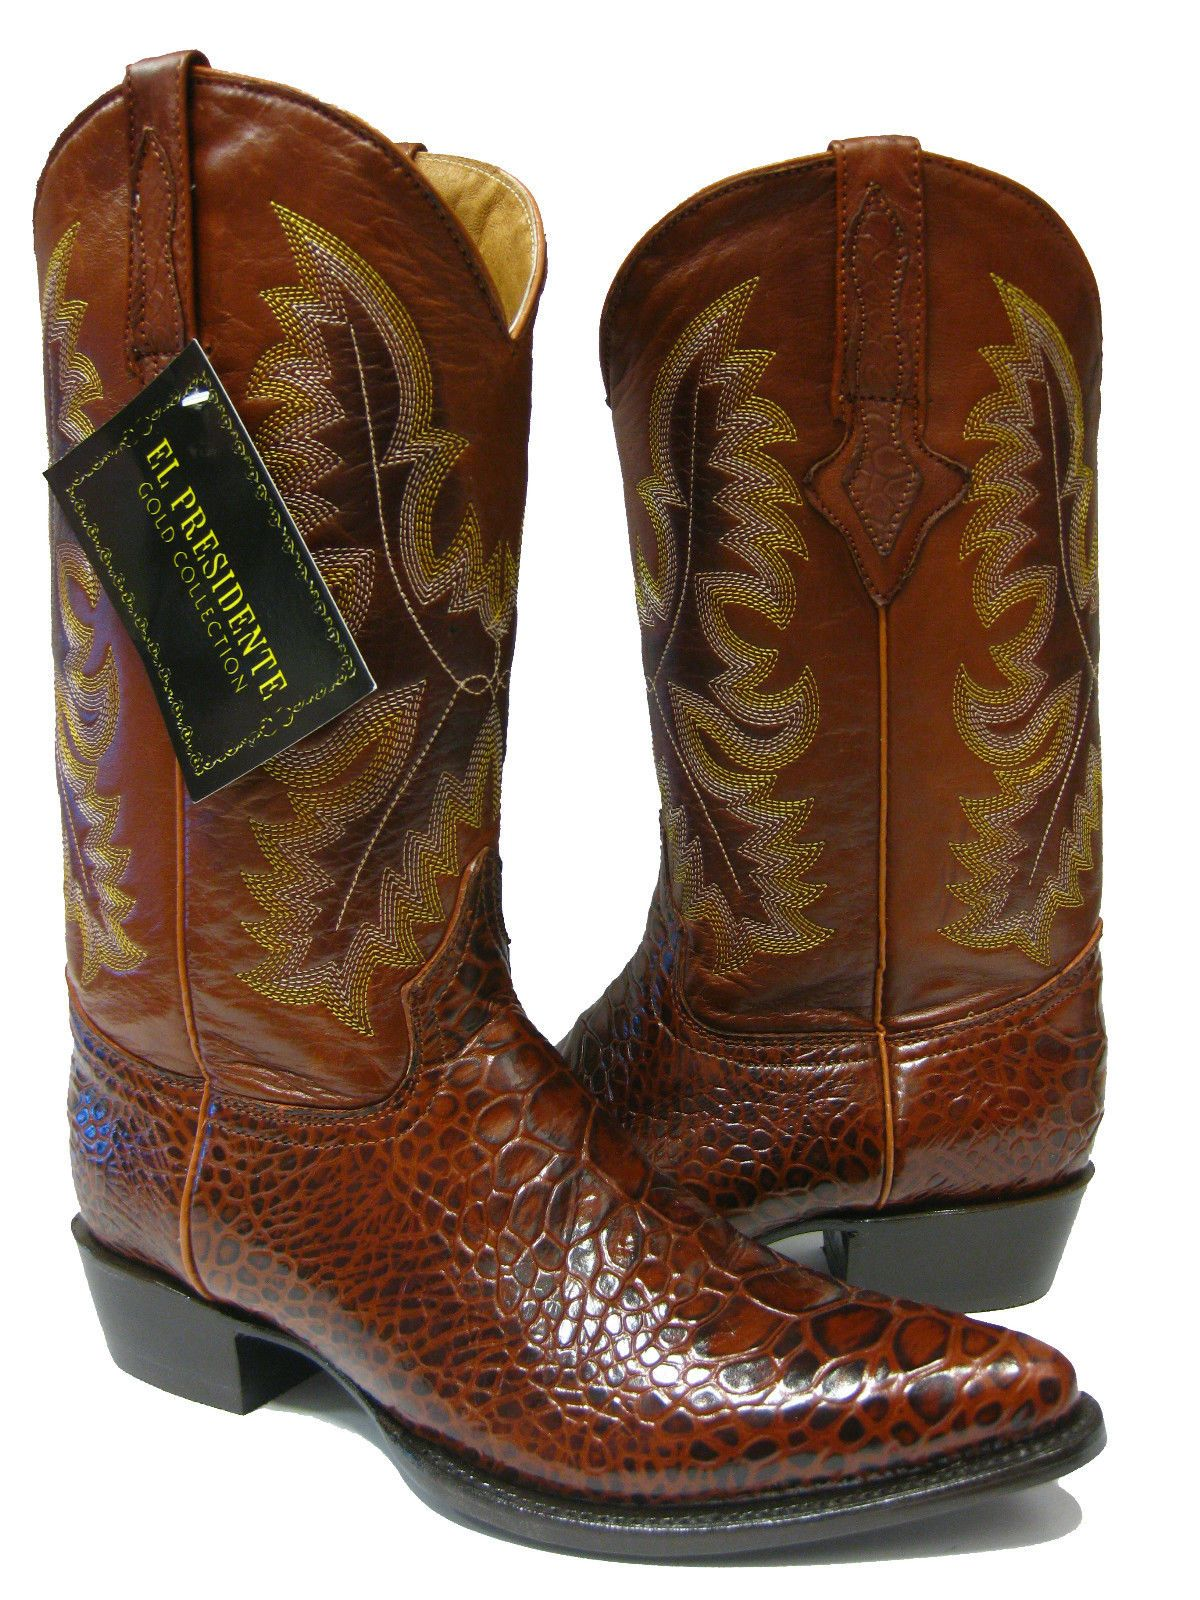 MEN'S COGNAC BROWN LEATHER BELLY Cut CROCODILE ALLIGATOR COWBOY BOOTS